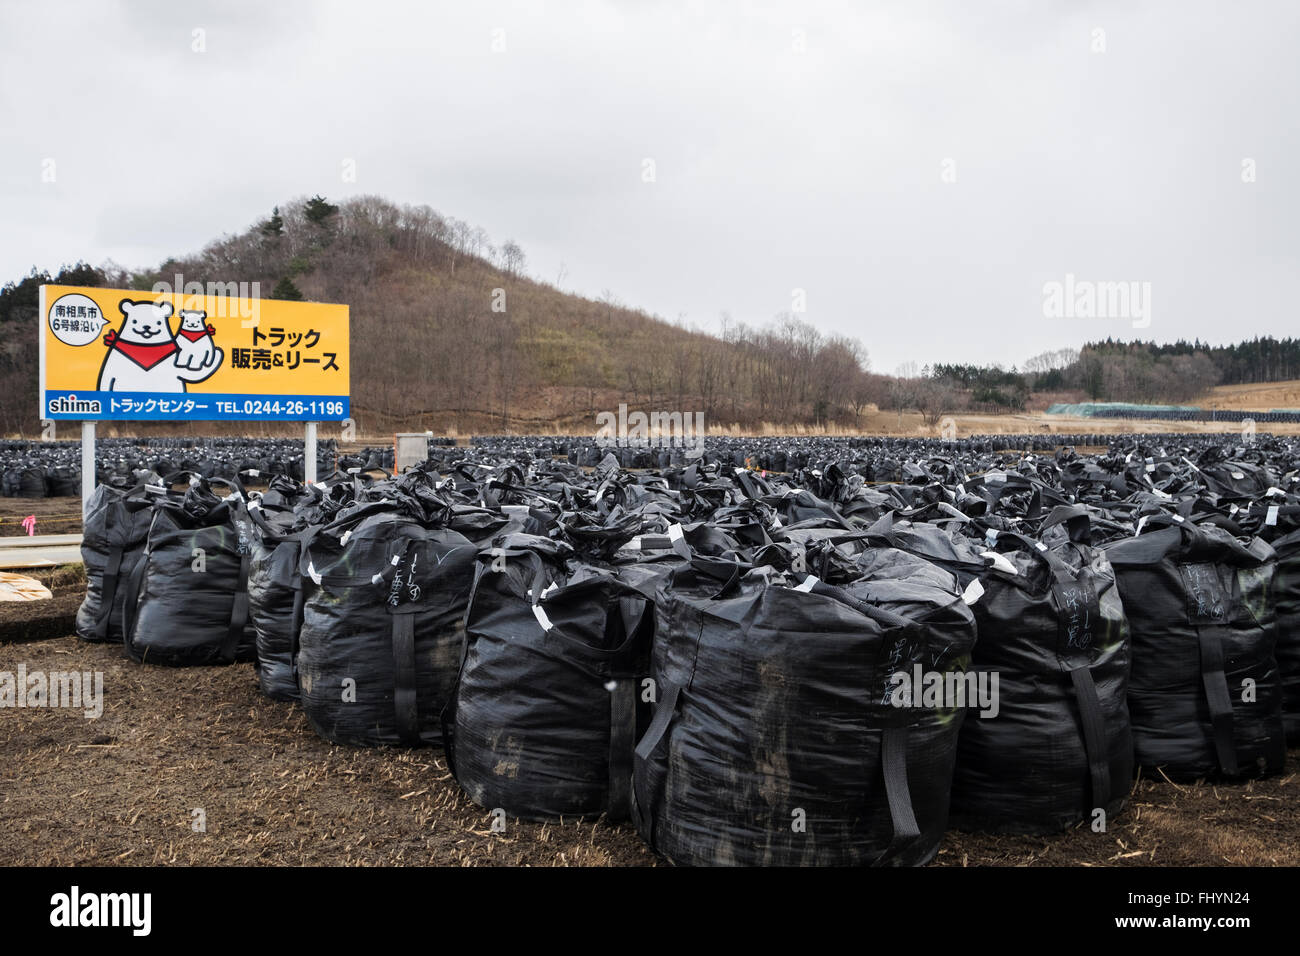 A sign adverting trucks is situated in a field with bags containing irradiated debris in Litate, Fukushima, Japan - Stock Image